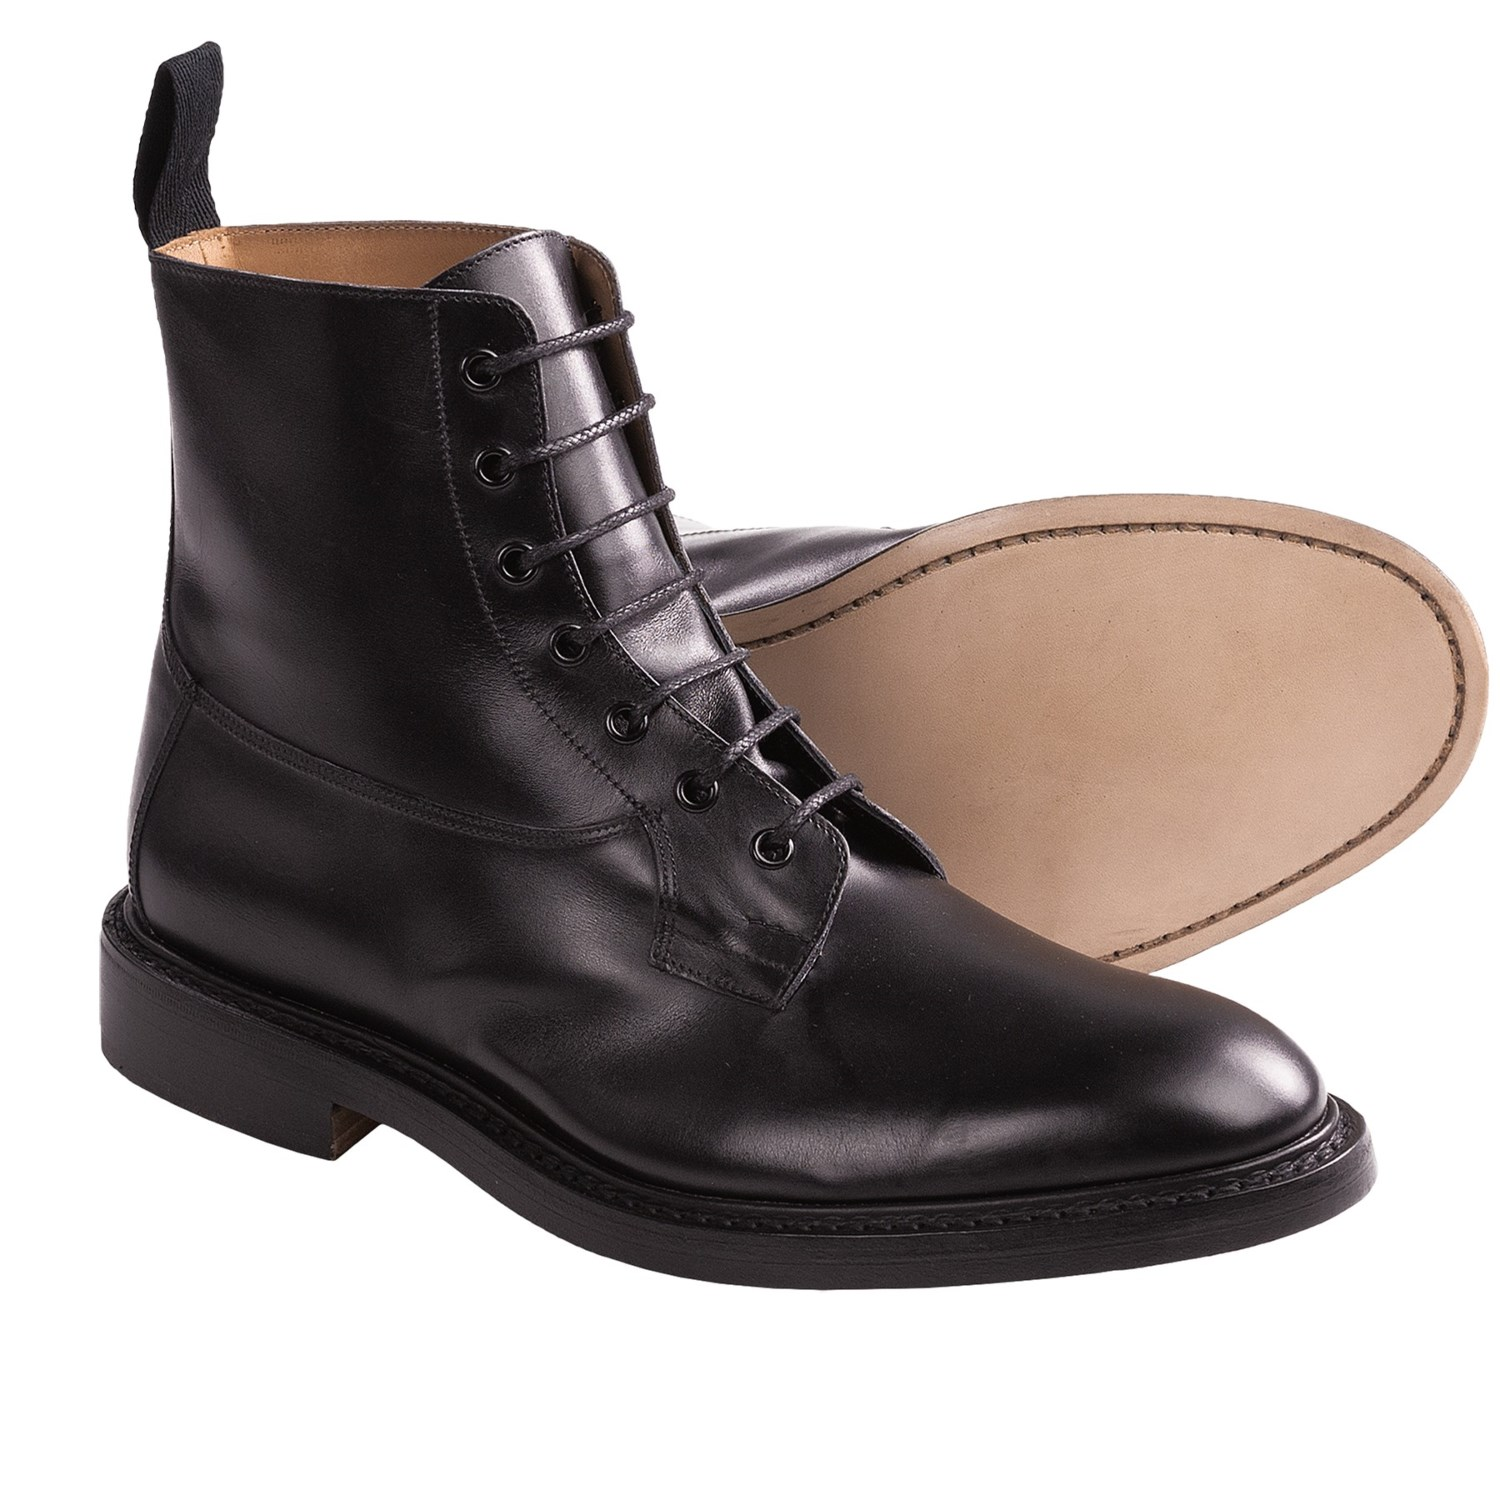 Mens Black Justin Boots Boots For Men in Black